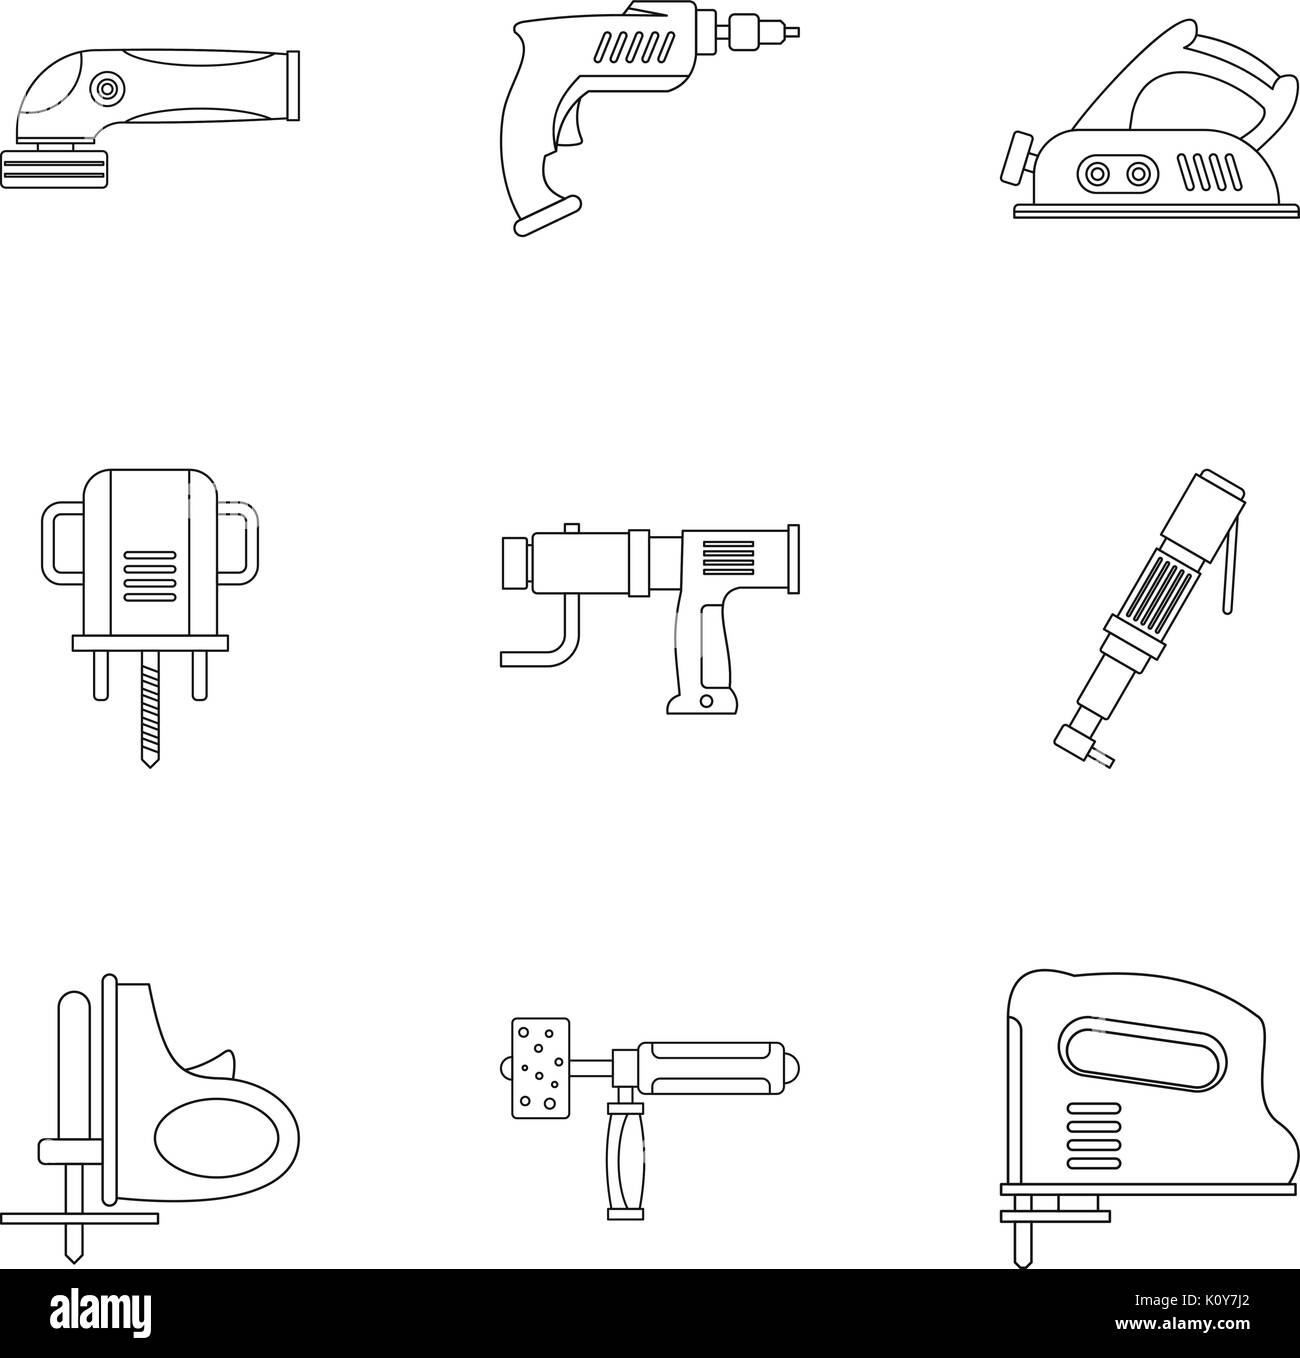 Construction tool icon set, outline style - Stock Image